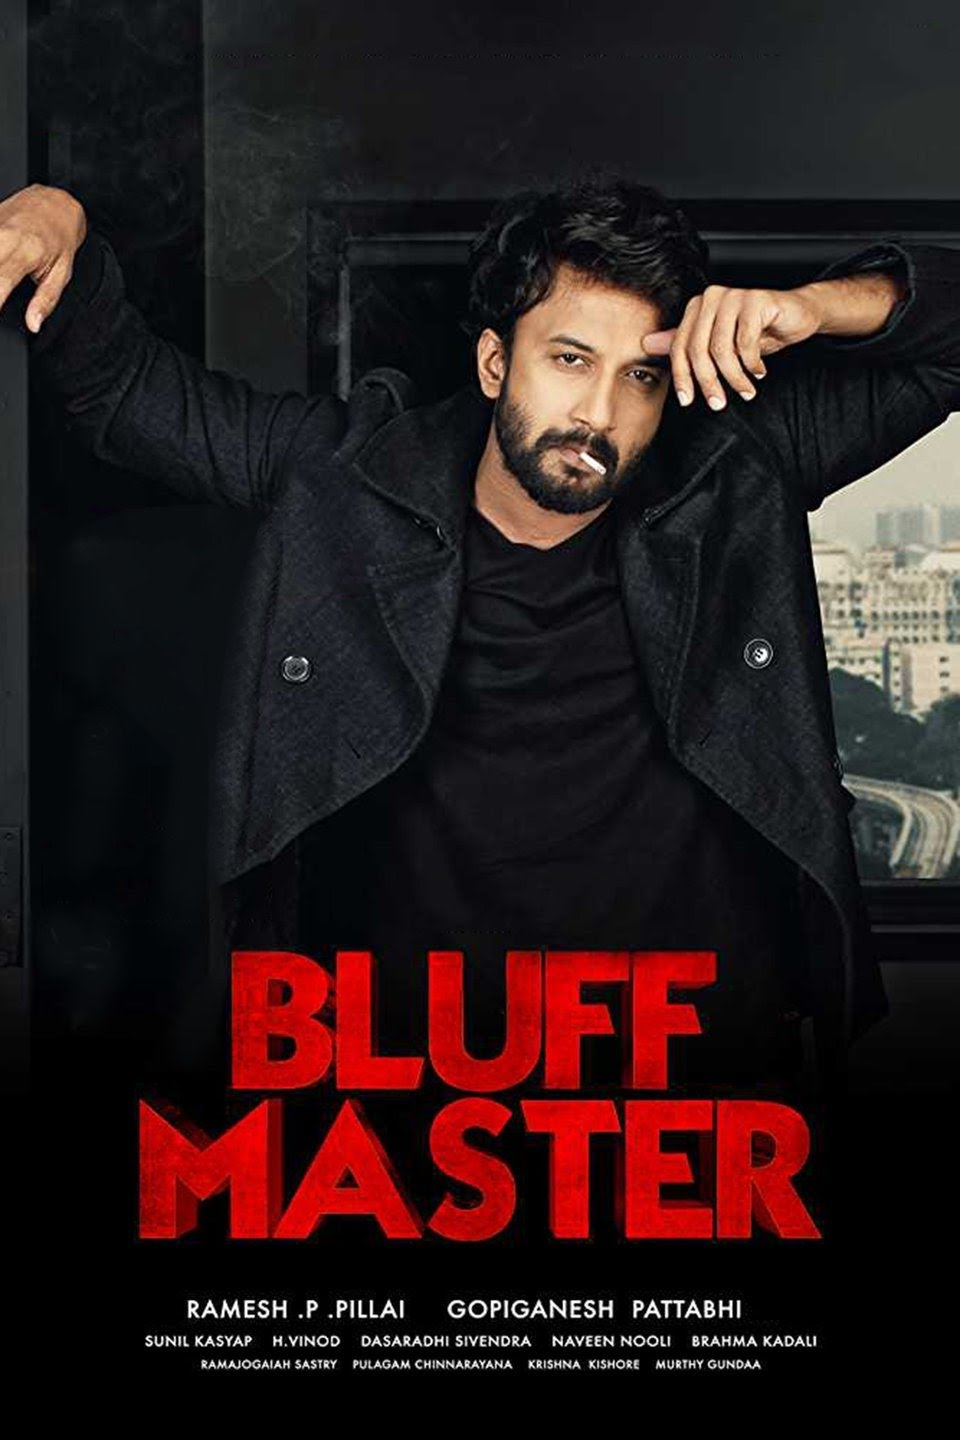 Download Bluff Master 2020 HDRip 400Mb Hindi Dubbed 480p | 720p